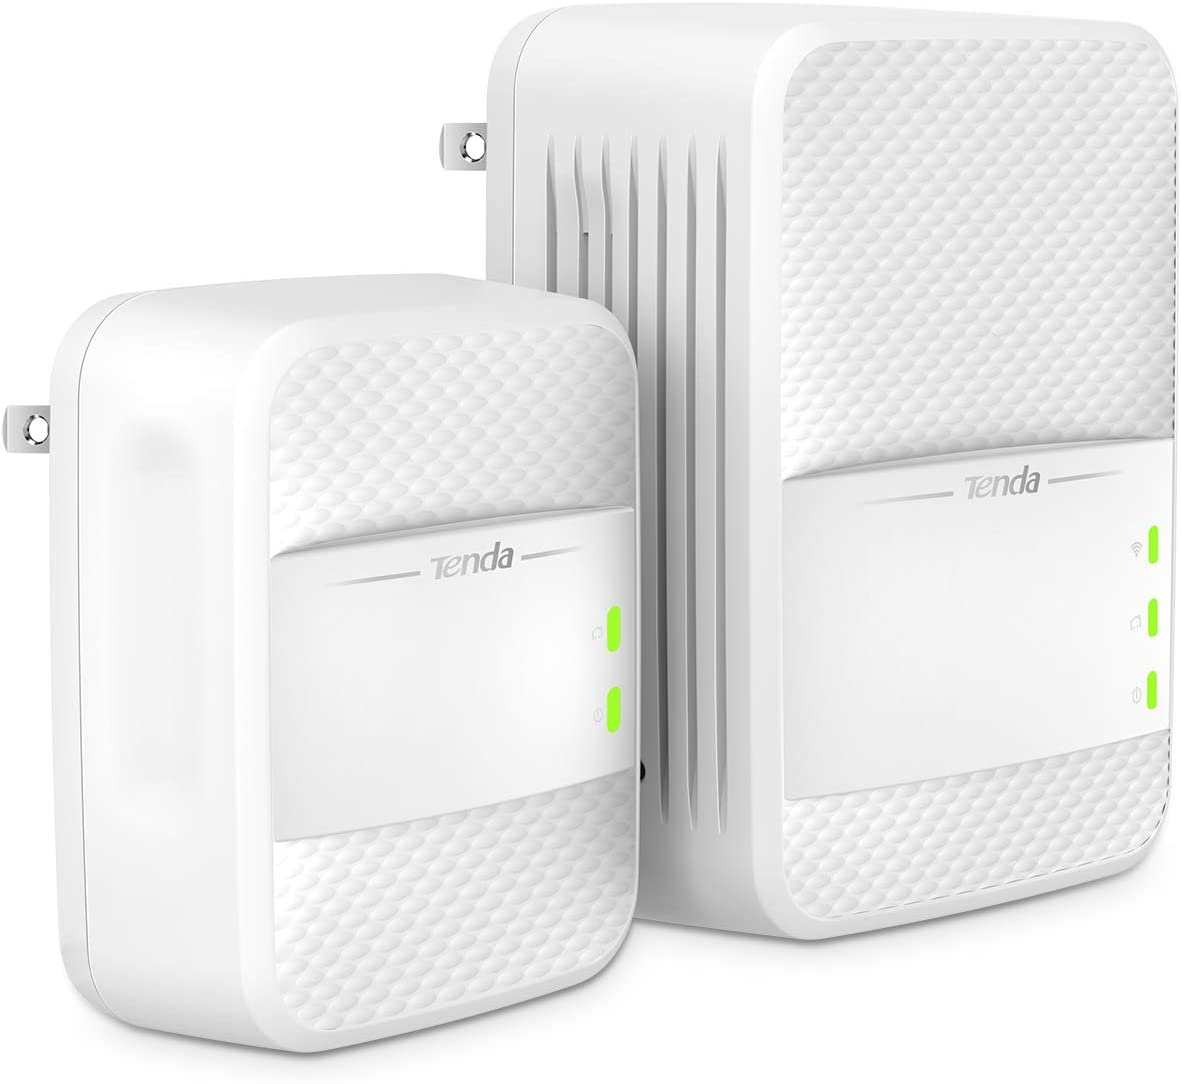 Tenda AV1000 Powerline Wi-Fi Extender, Dual Band AC Wireless, Gigabit Port, Plug and Play (PH10)